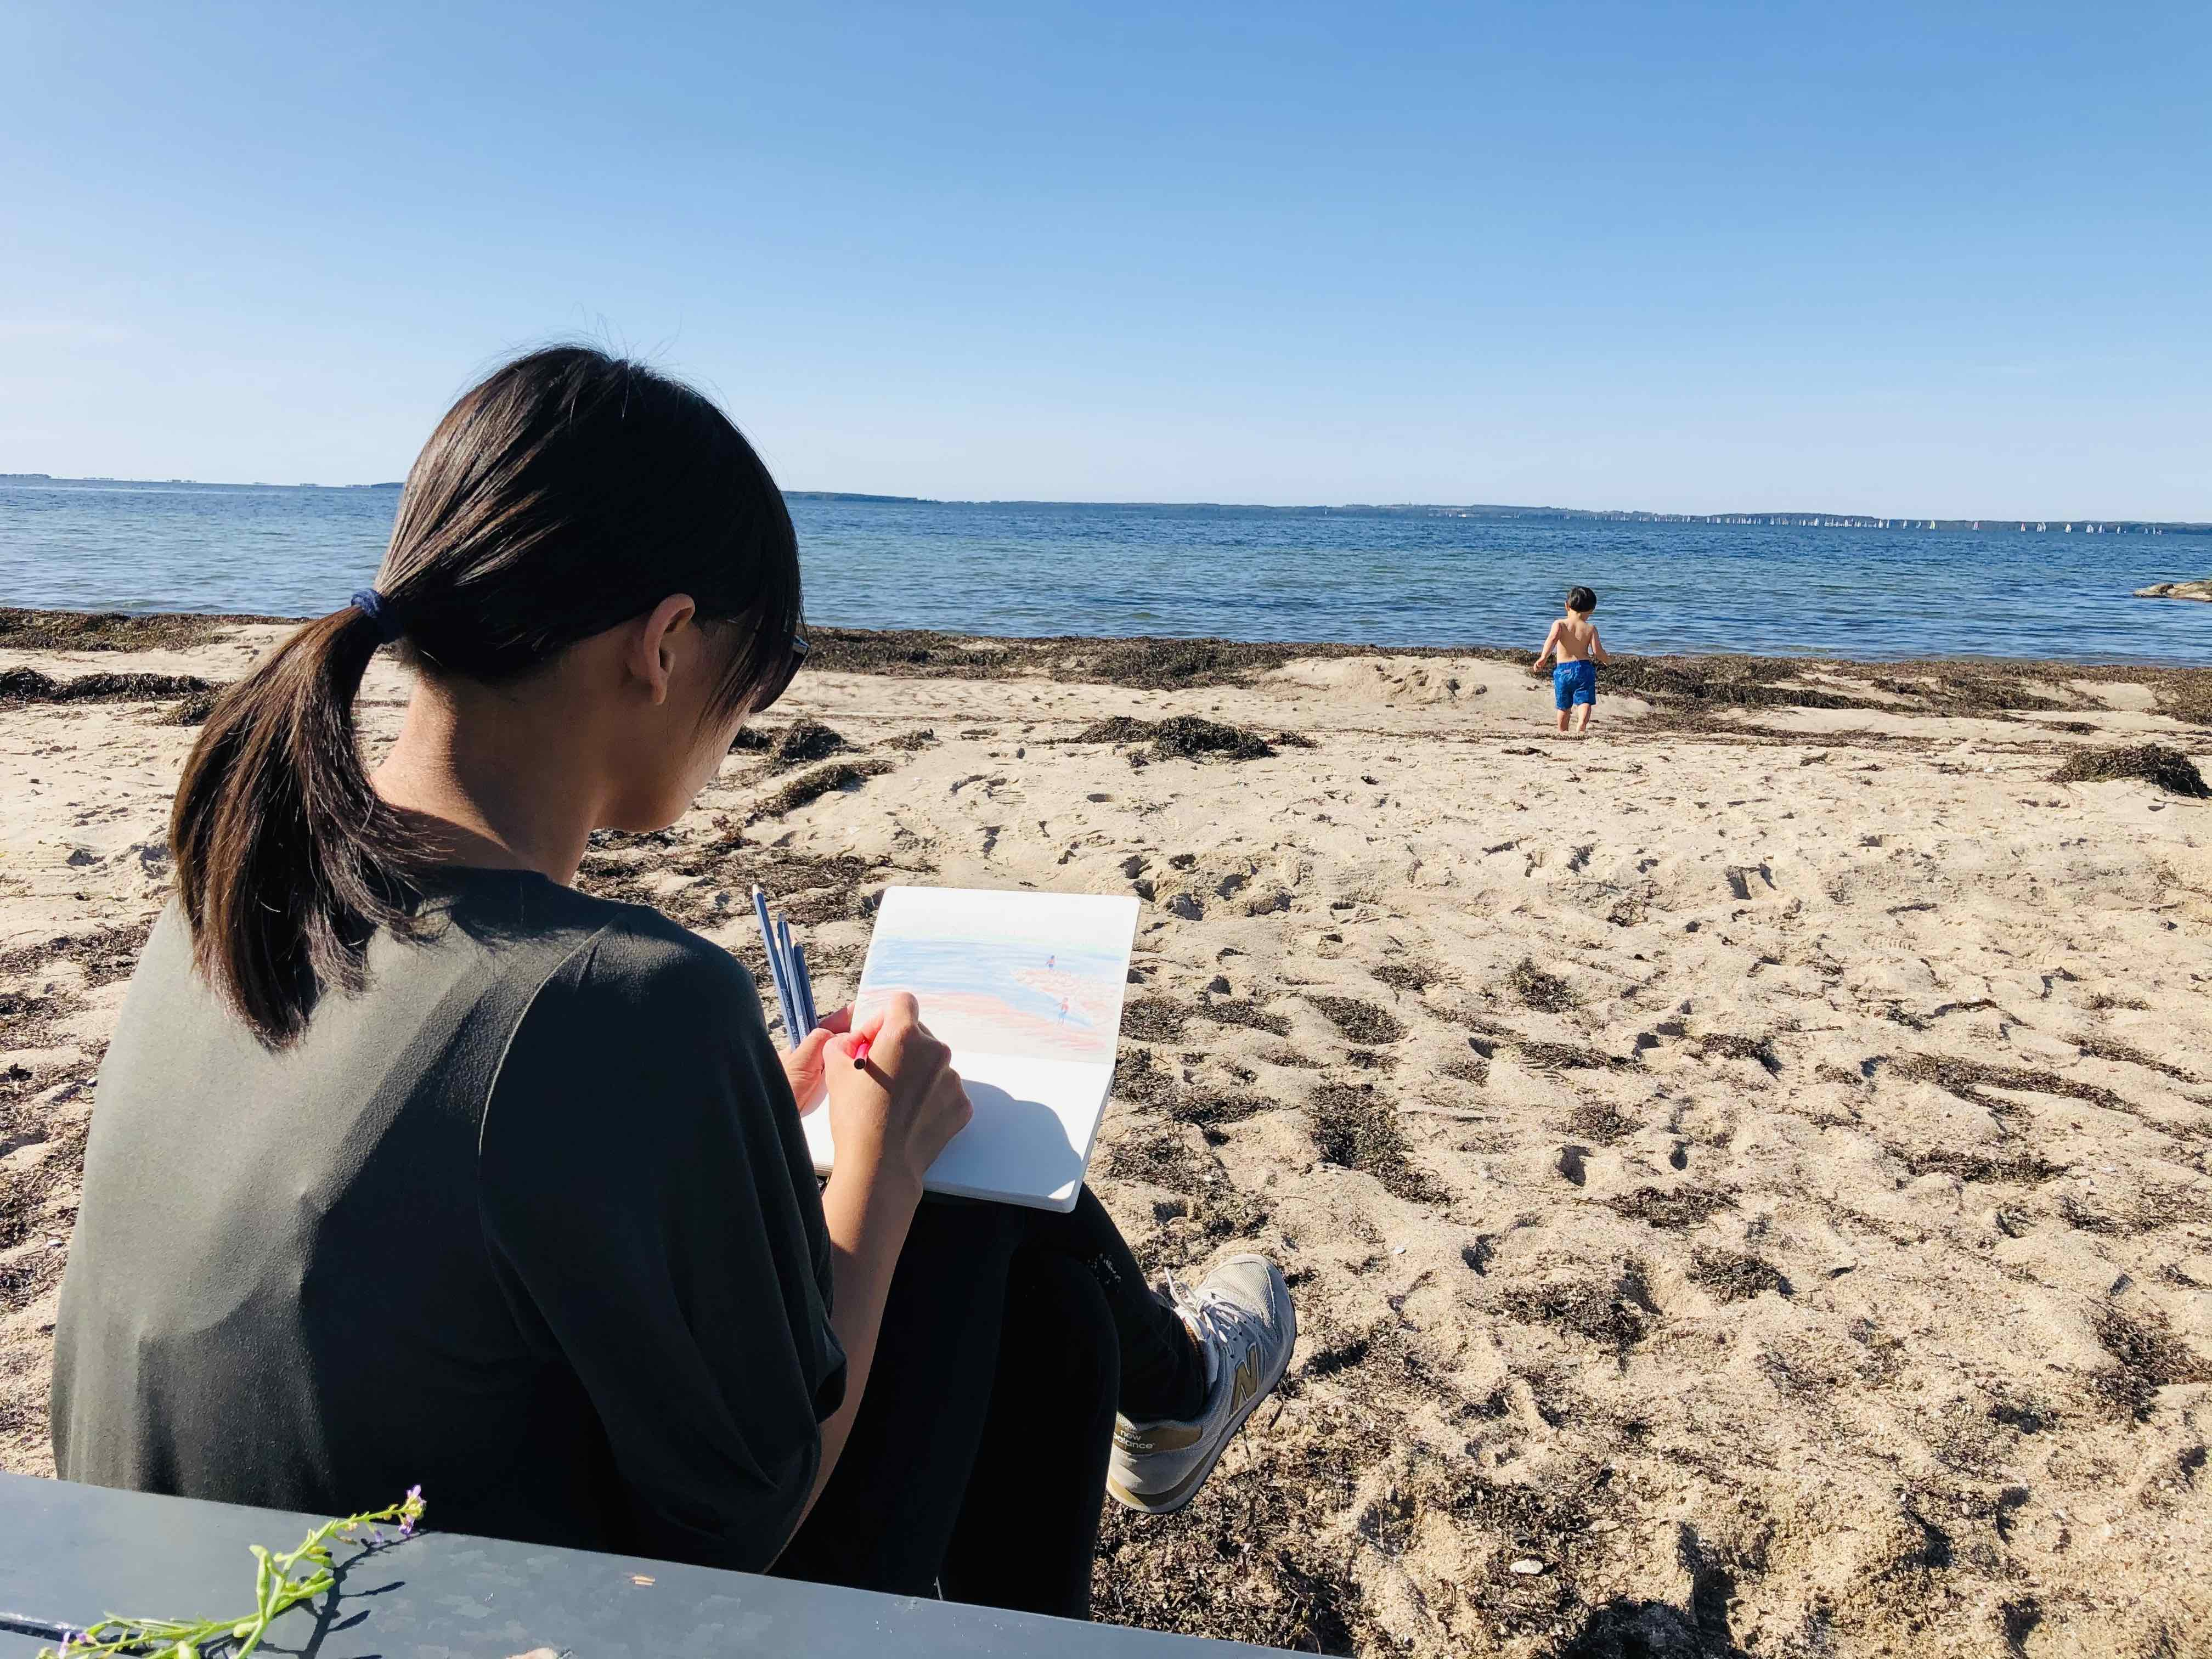 A photo of How Yan Betty Wong sitting at the beach while drawing looking at the ocean ahead